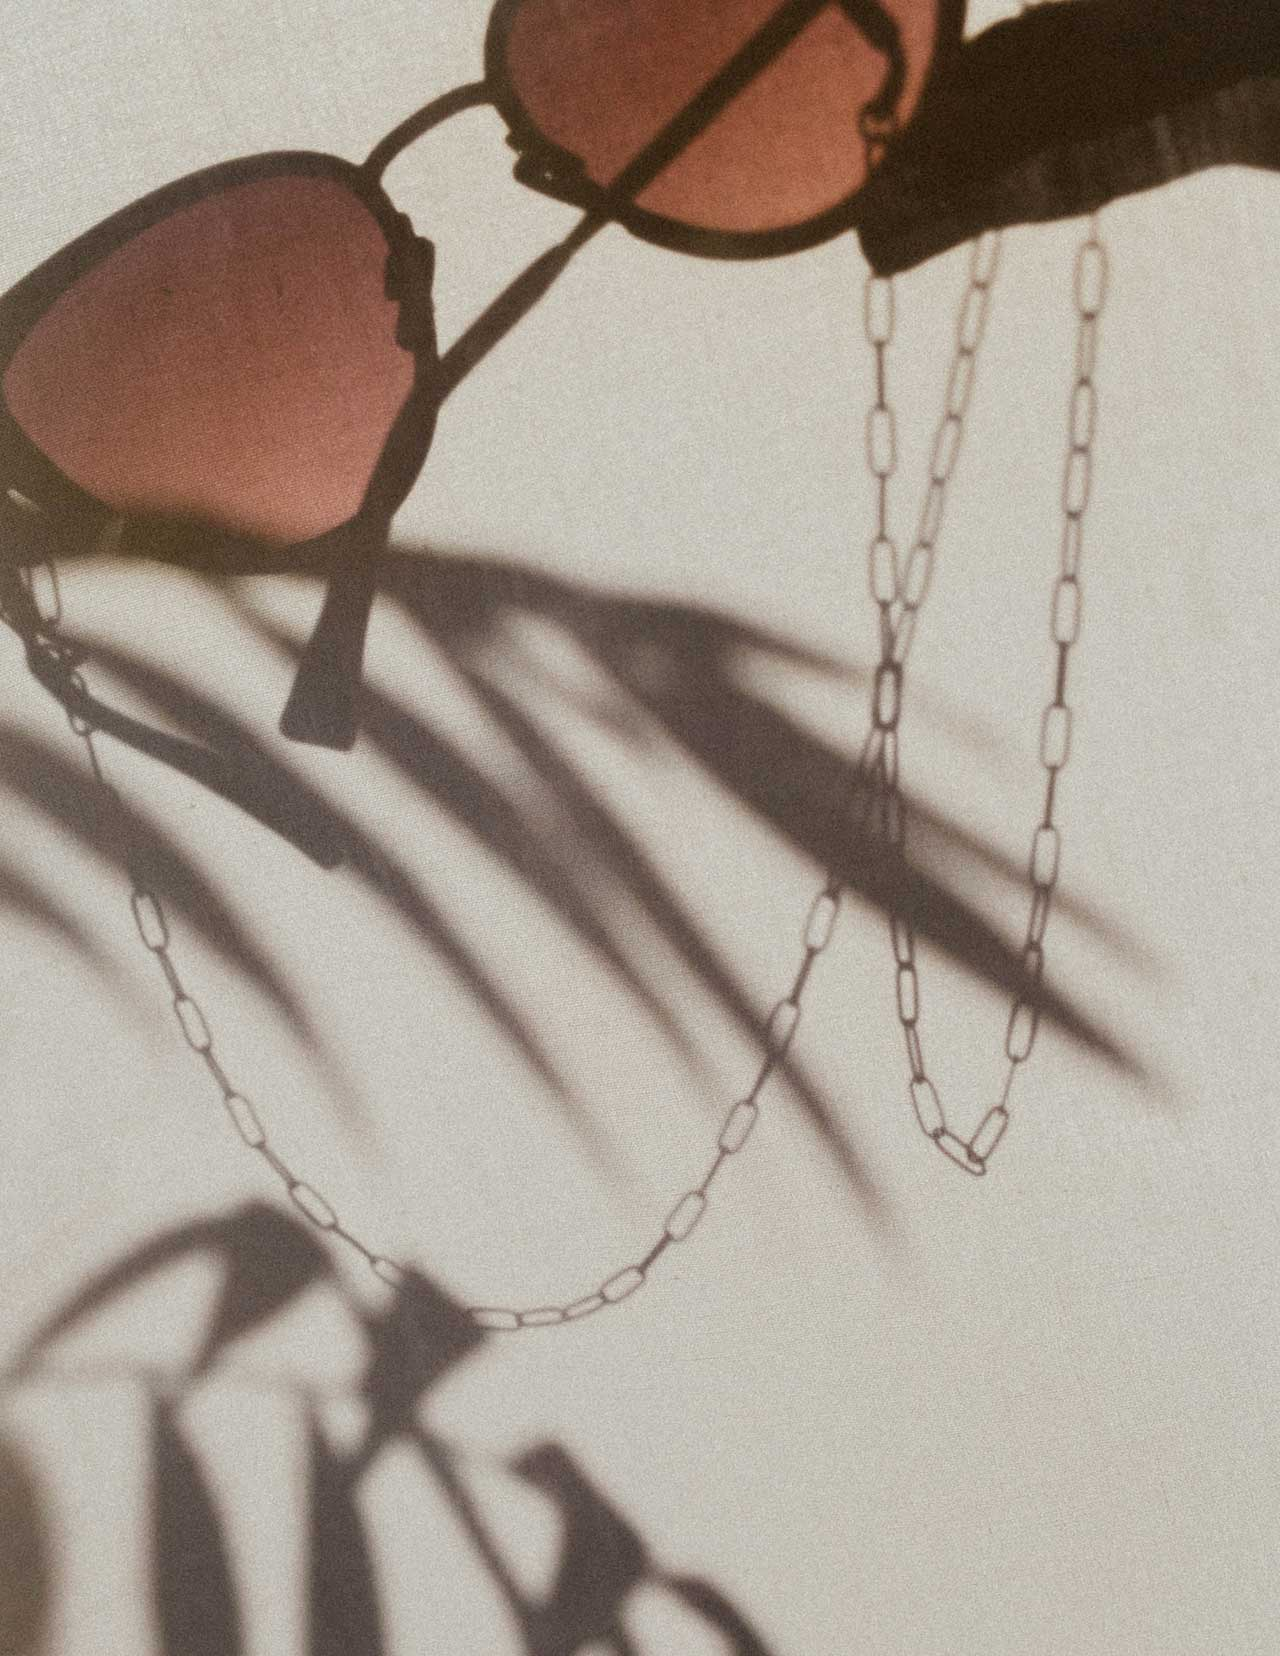 Shadow of sunglasses and KNOK Glasses Chain held up in the sun